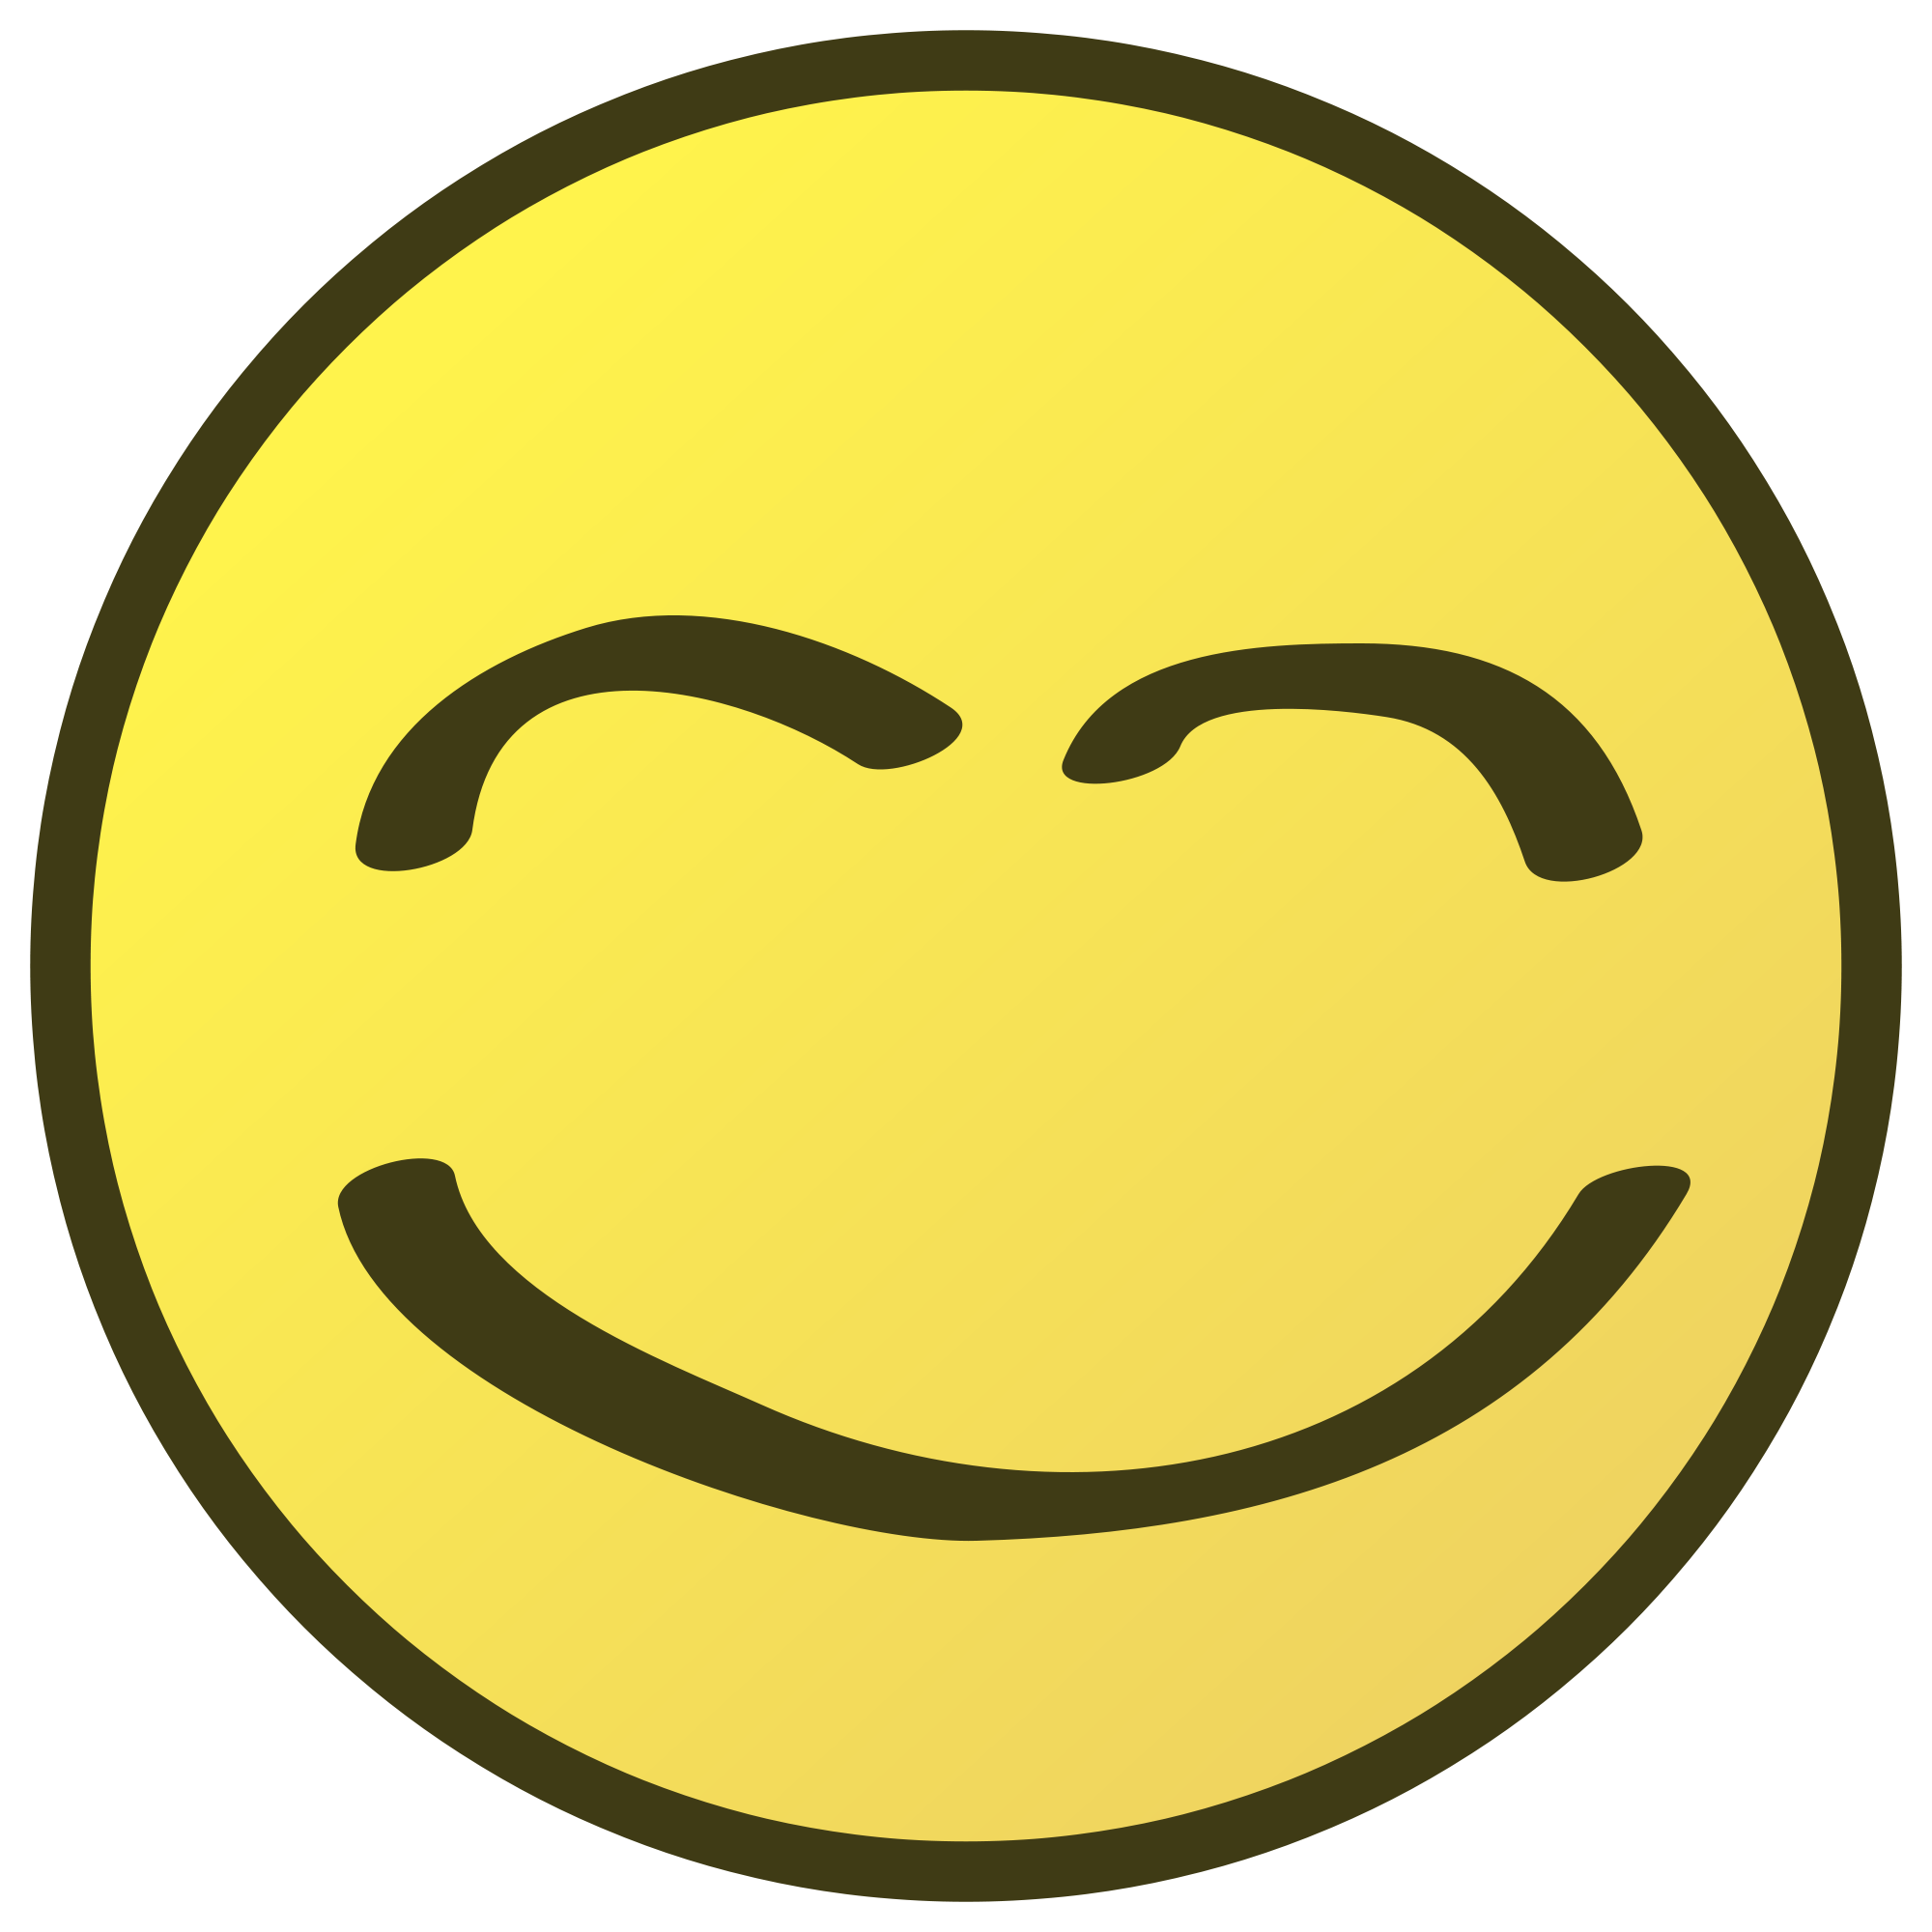 Smile svg #380, Download drawings